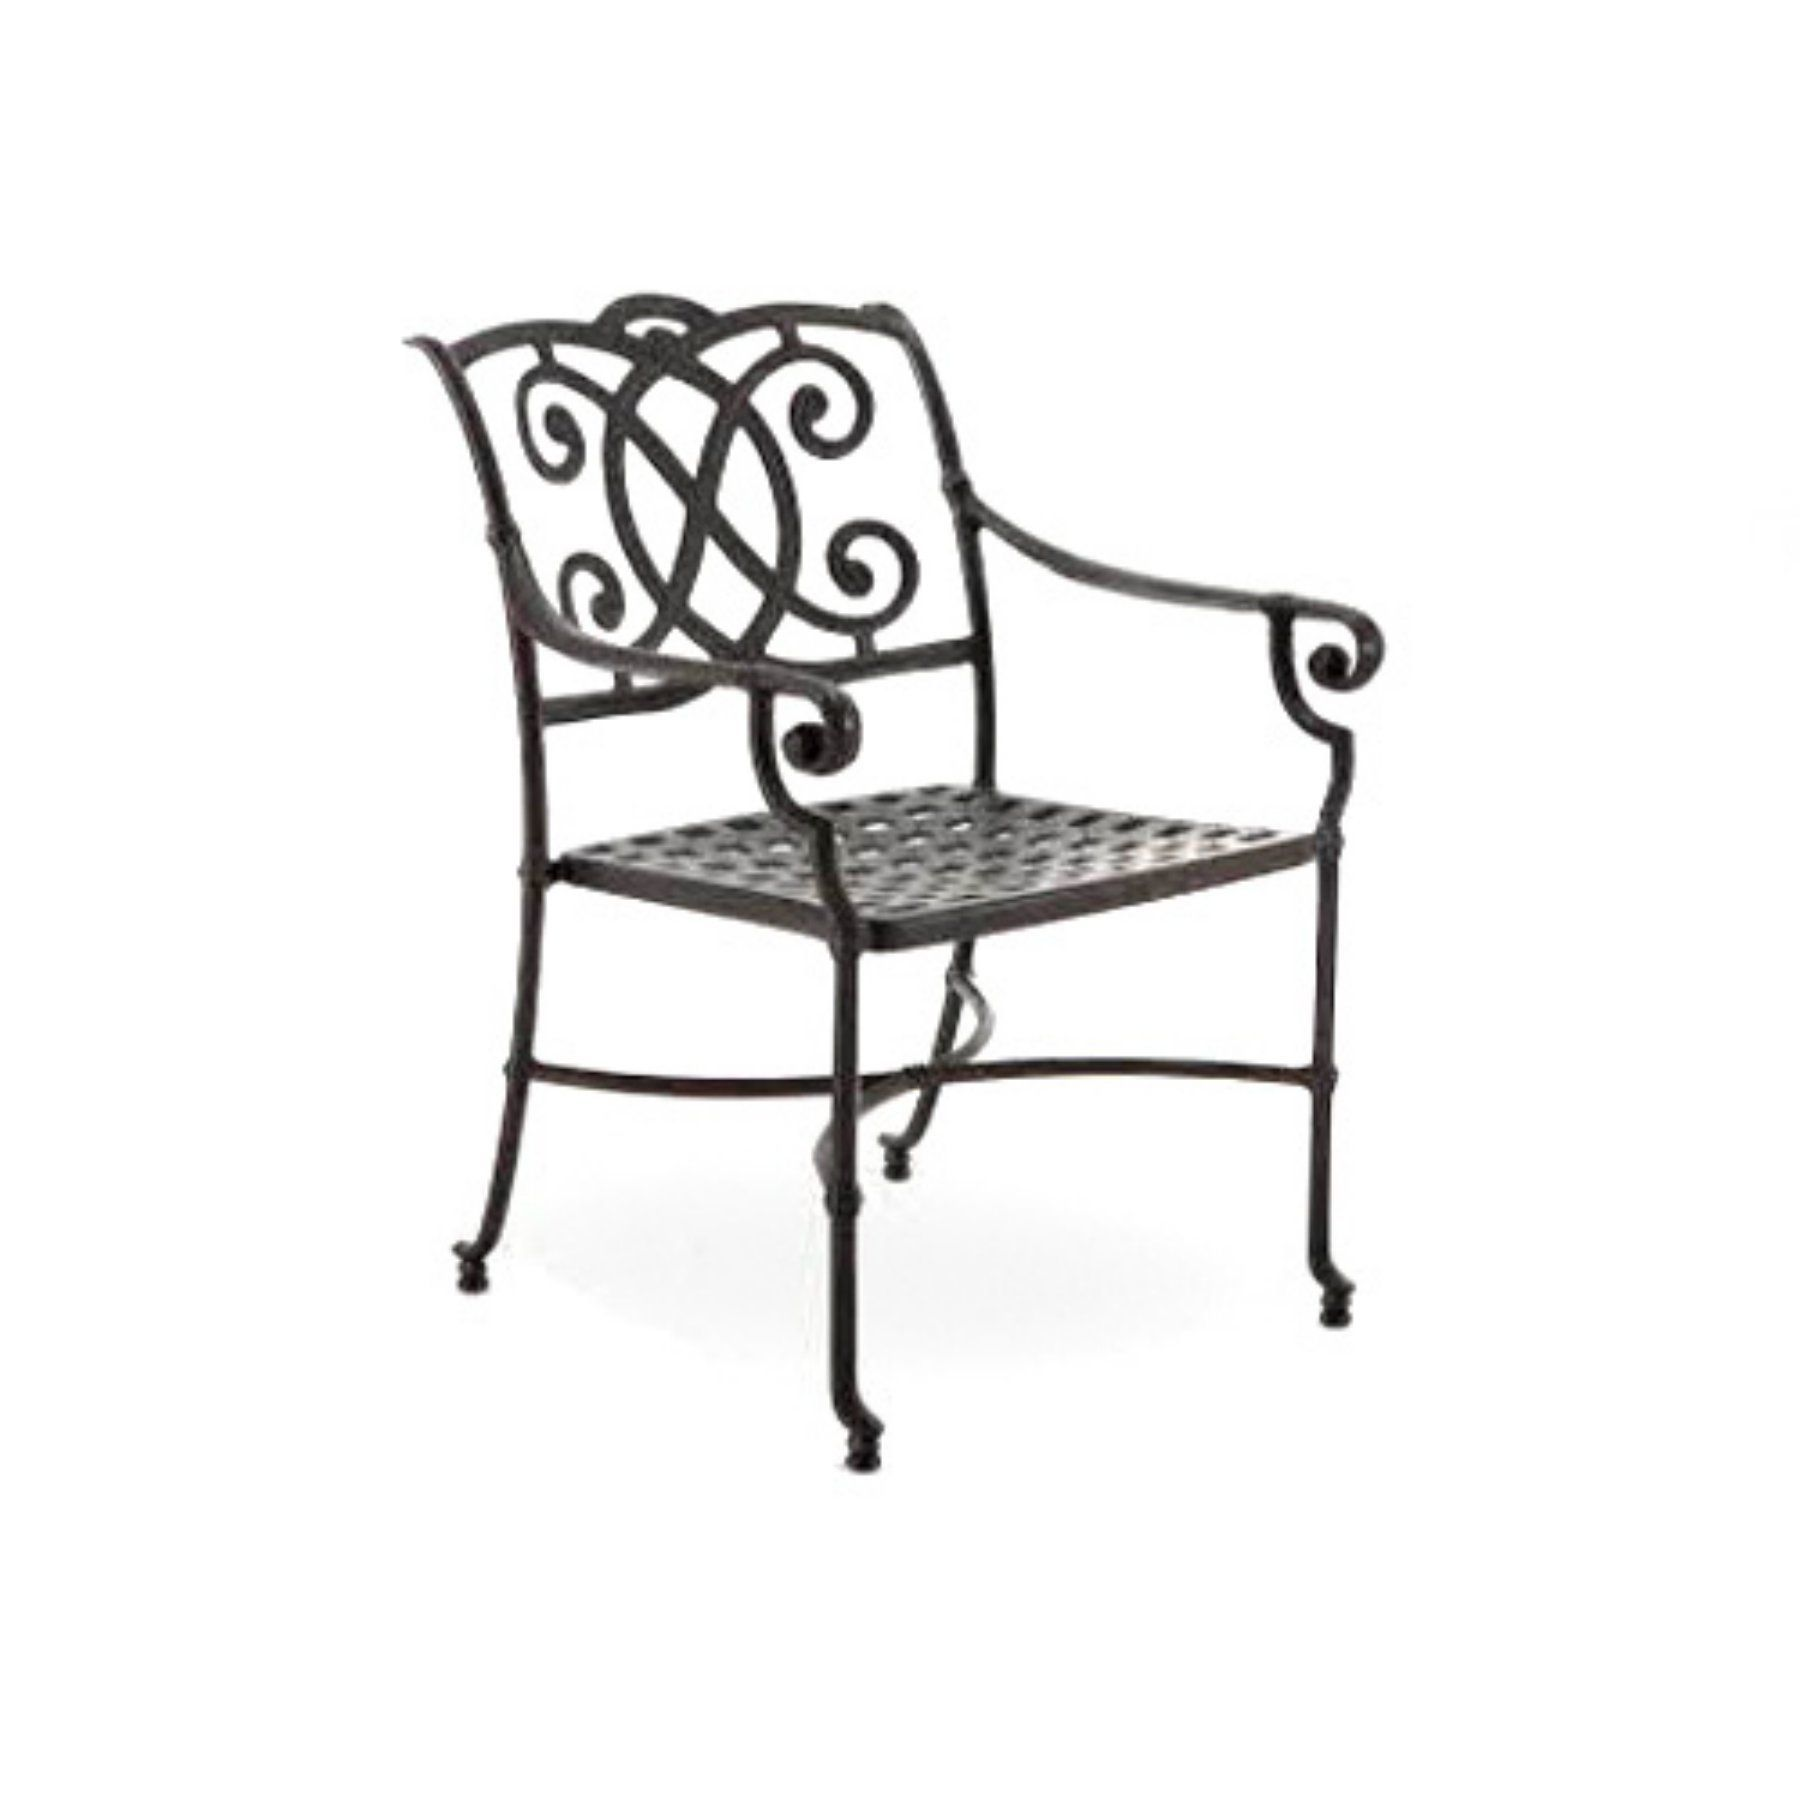 Outdoor winston volterra legacy collection dining chair m